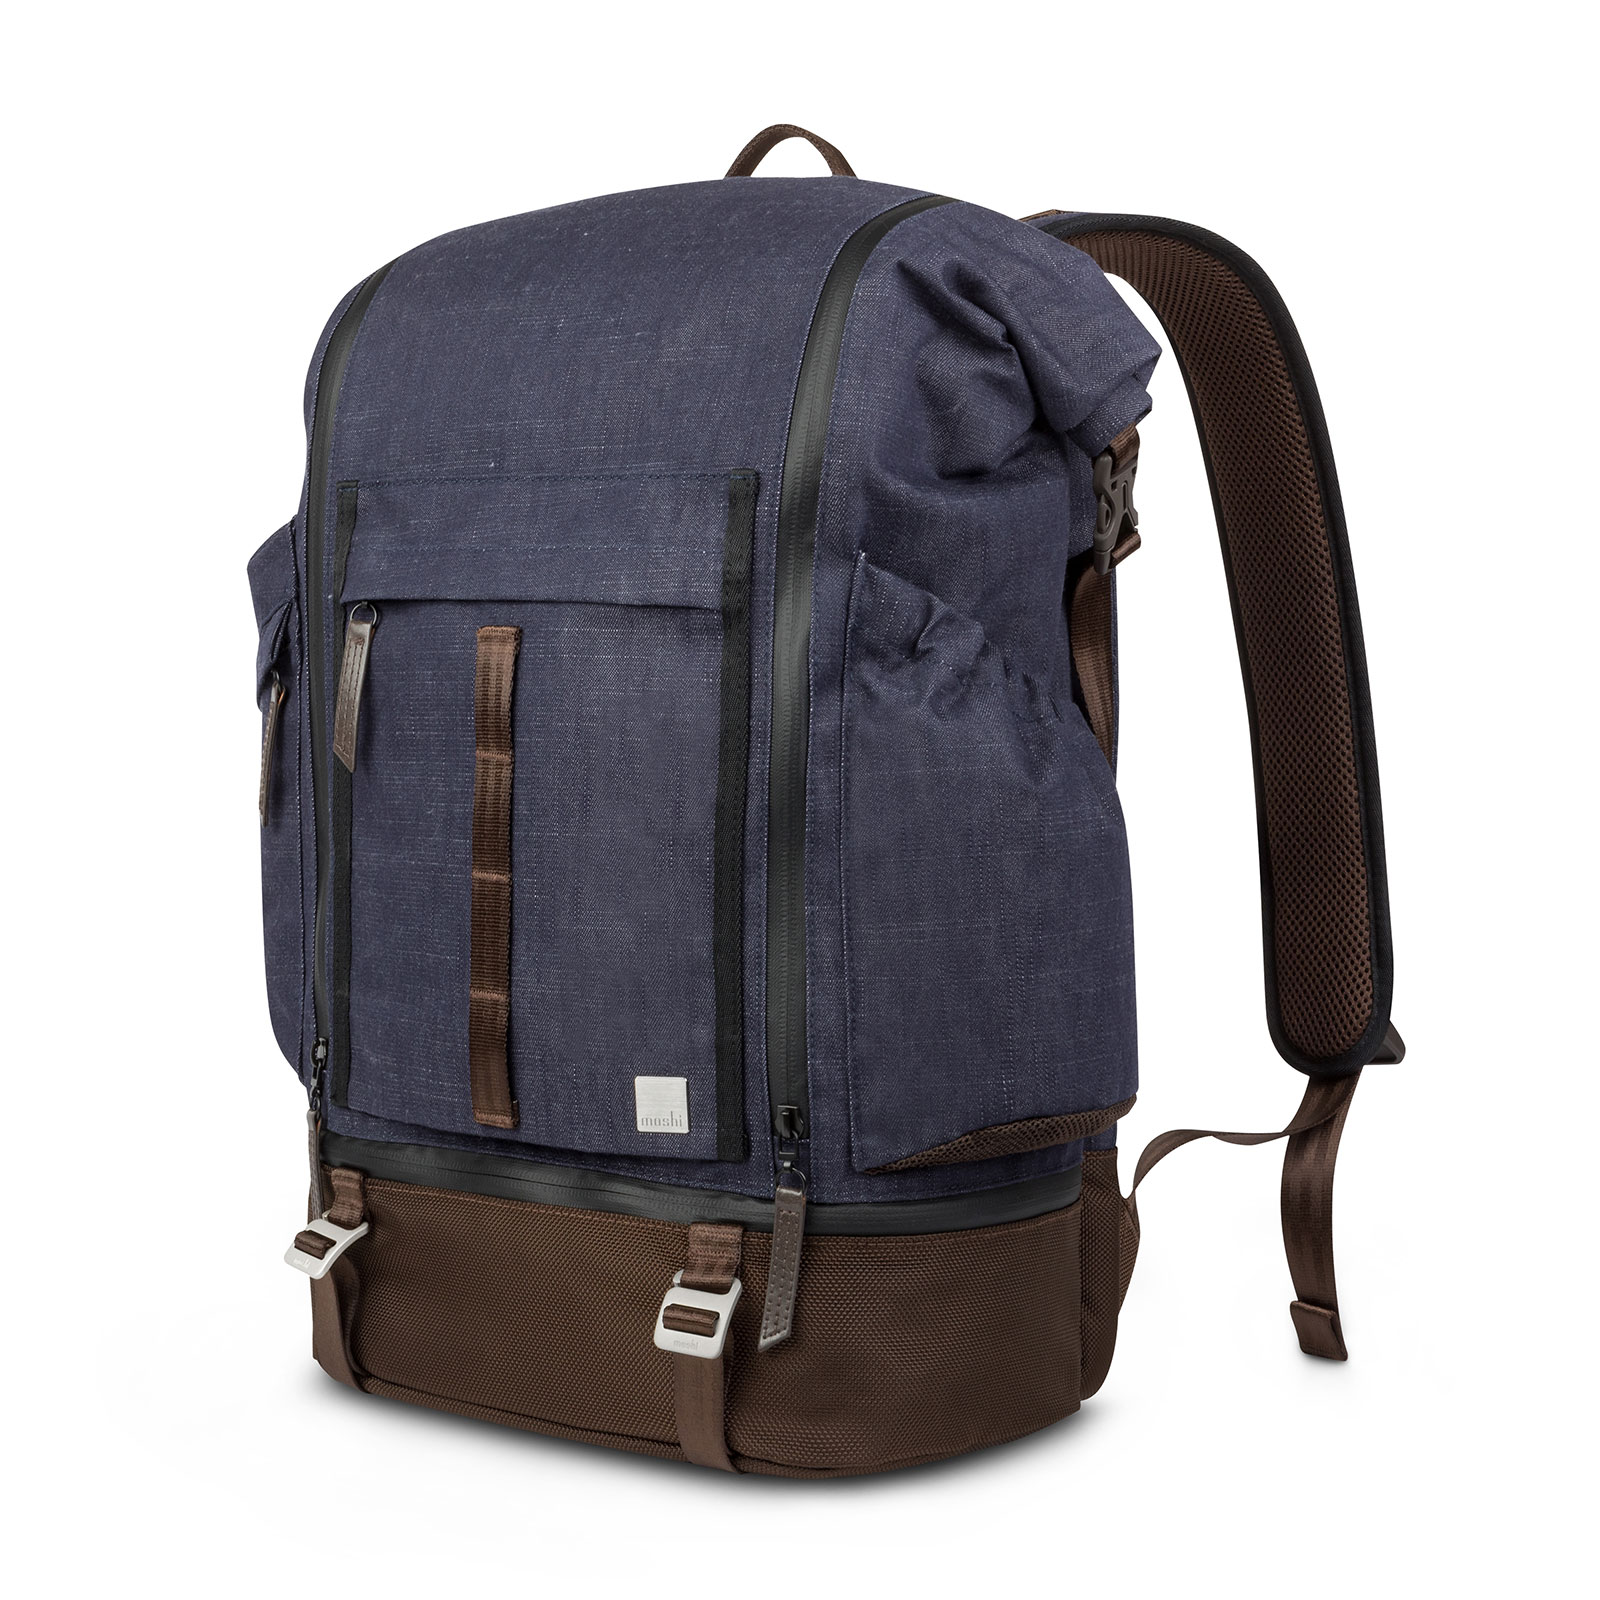 Captus Rolltop Backpack-image